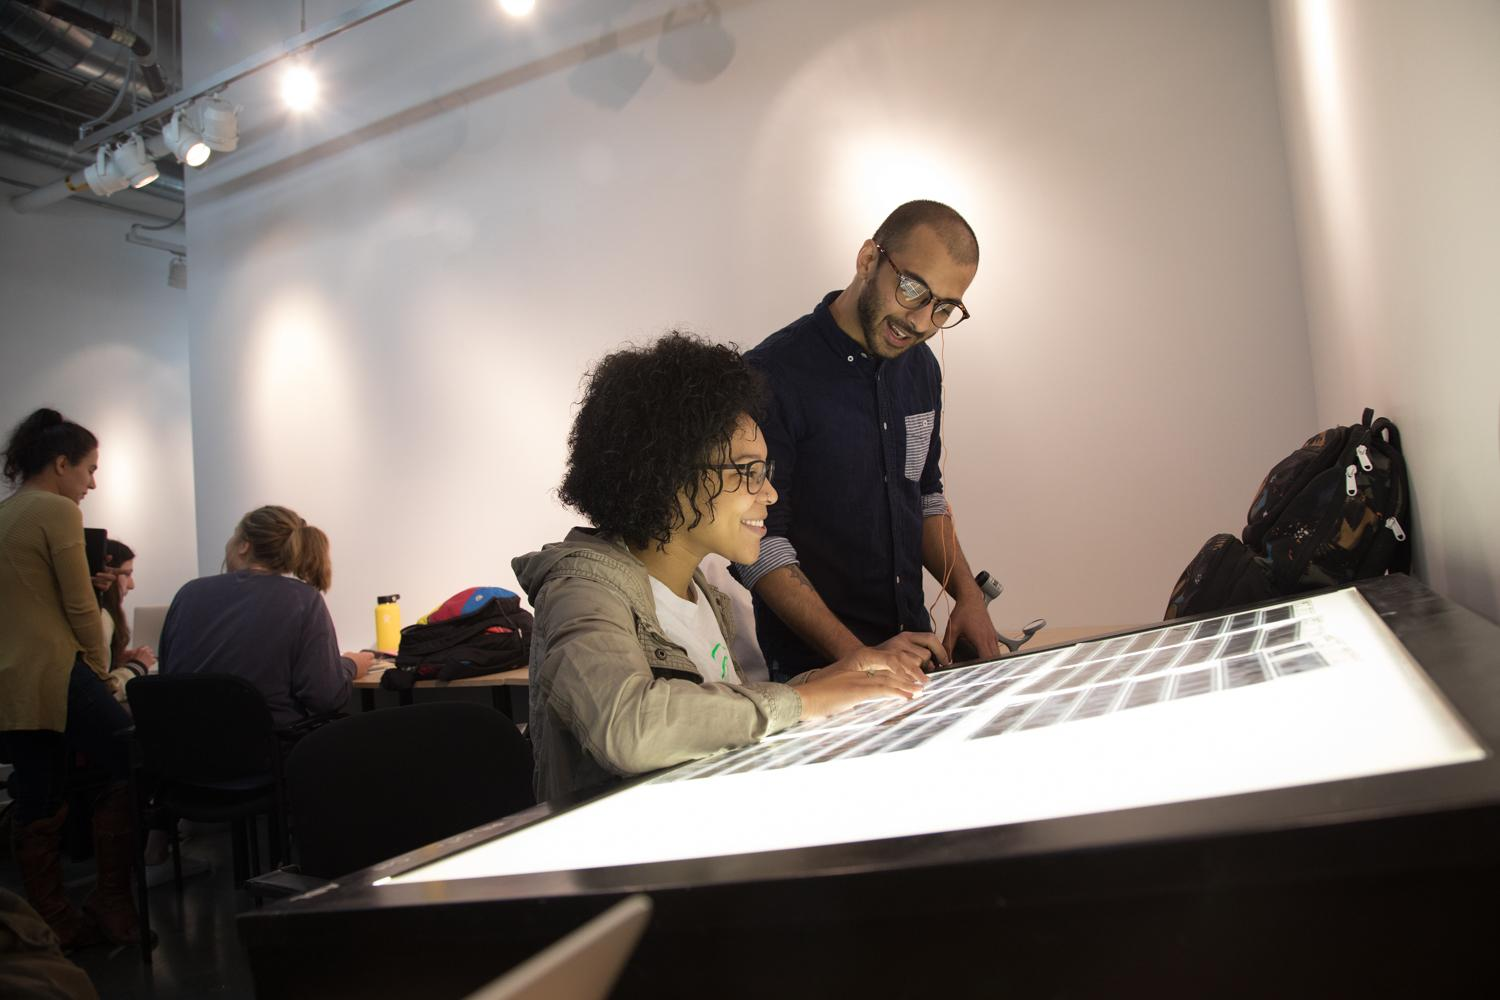 Two students looking at negatives on a lightbox